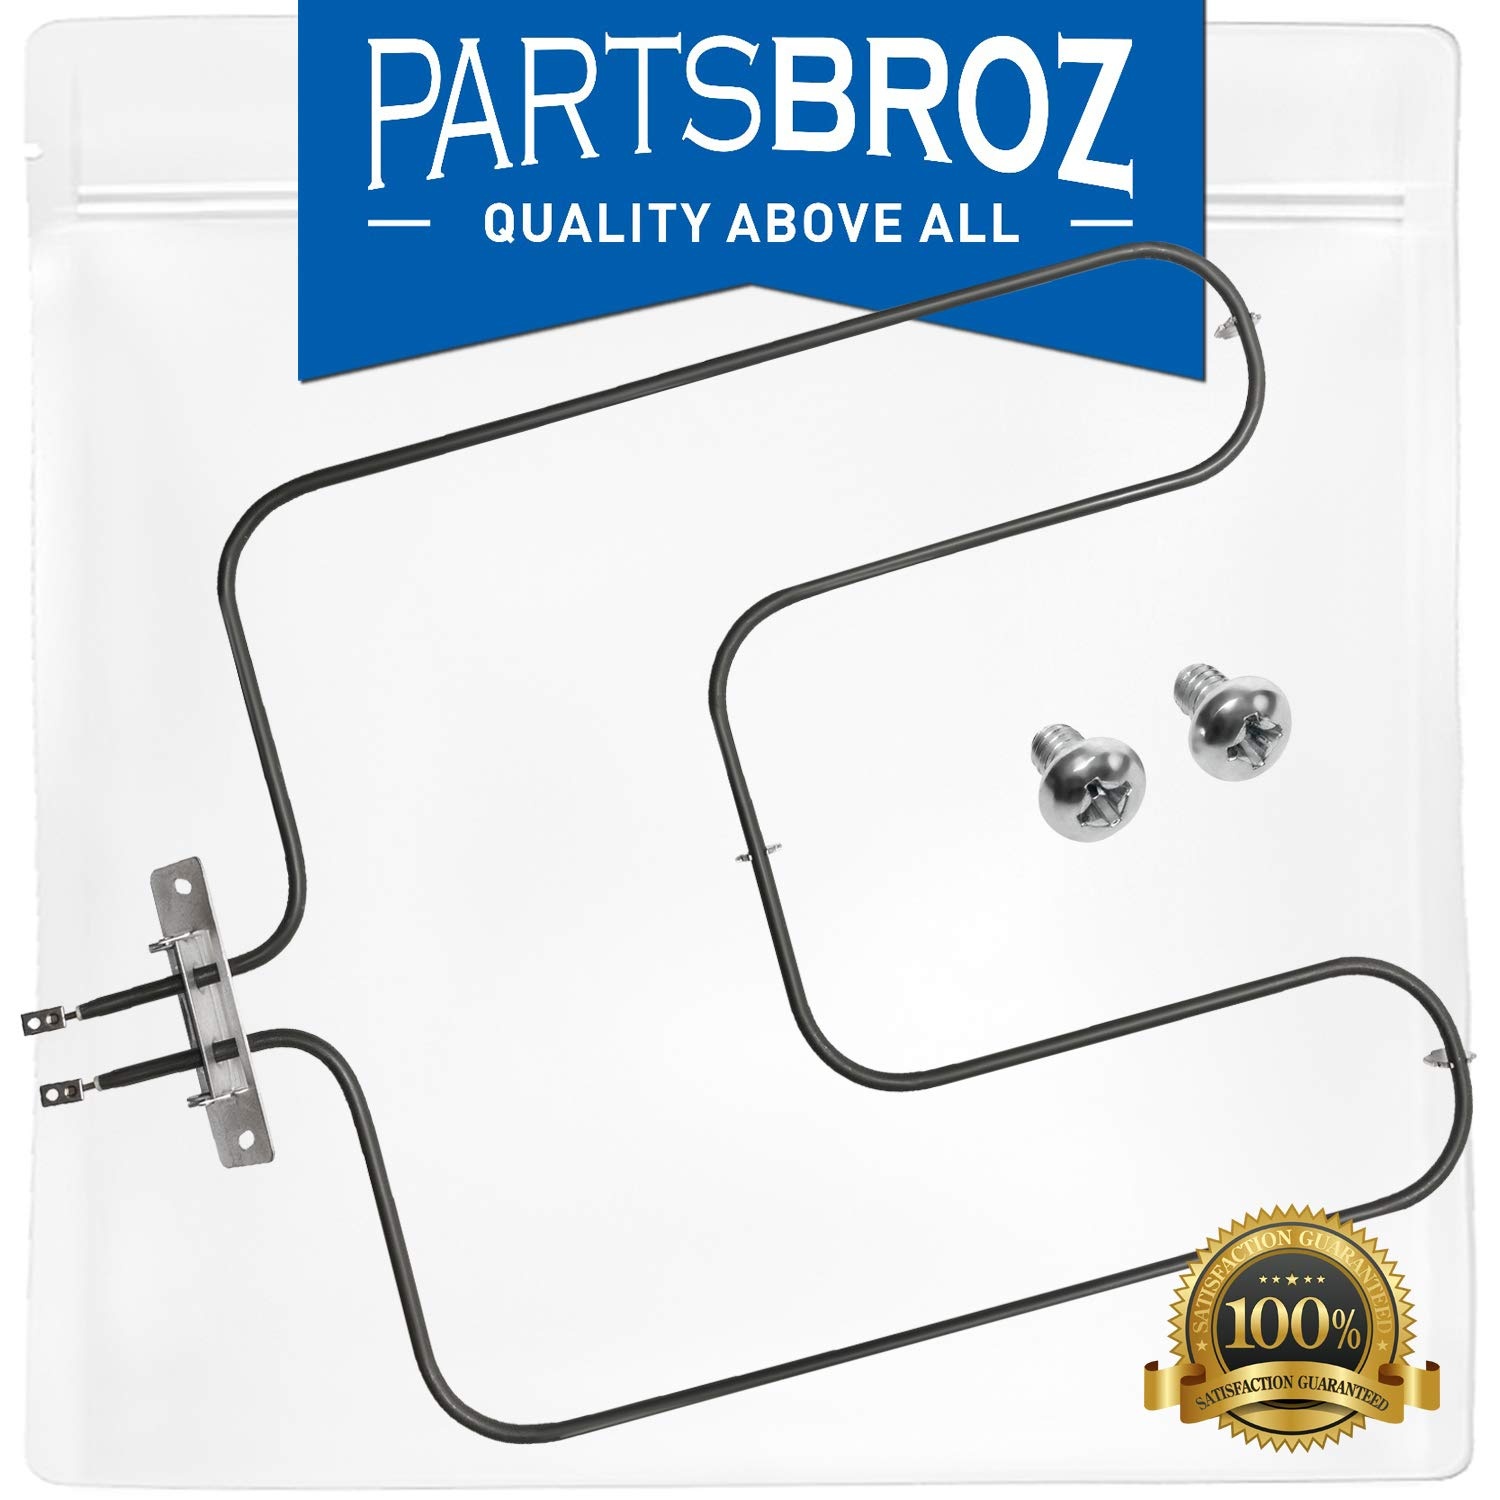 WB44X200 Bake Element for GE Ovens by PartsBroz - Replaces Part Numbers AP2031031, 3267, AH249424, EA249424, PS249424, TS44X200, WB44X0160, WB44X0200, WB44X160, WB44X200R, WB44X6200